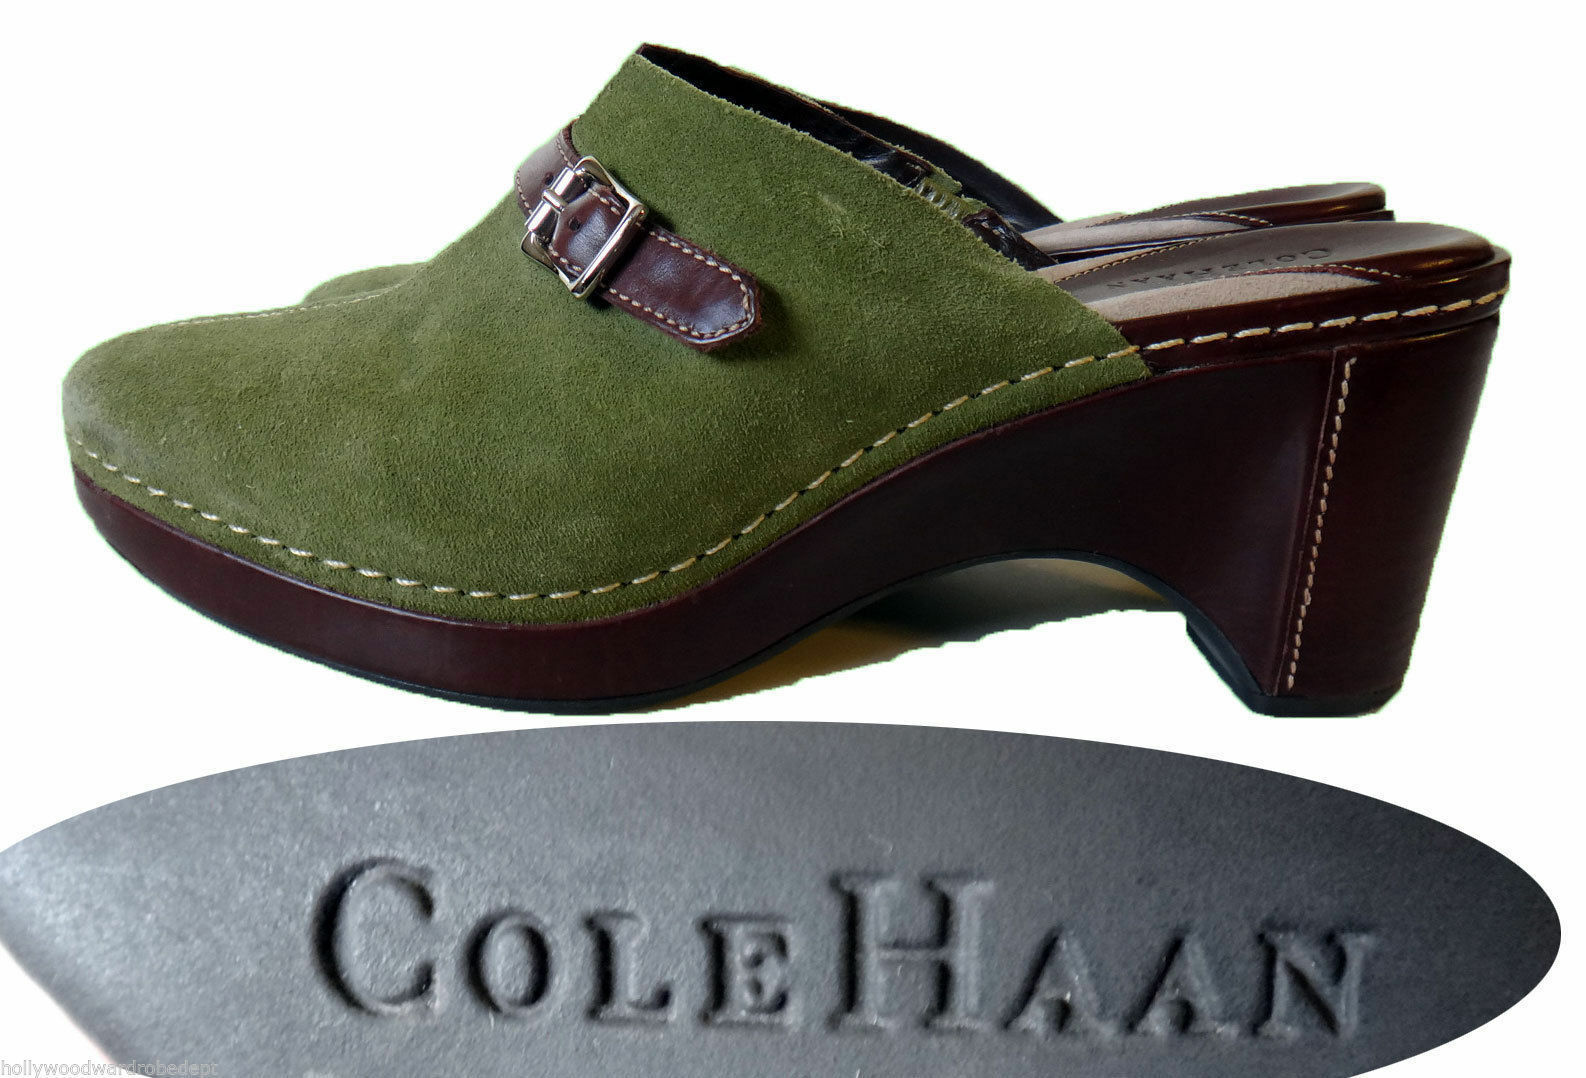 Cole Haan Green Green Green suede leather slip on MULE clog 9 B olive 3 inch heel 40 buckle e6cec5